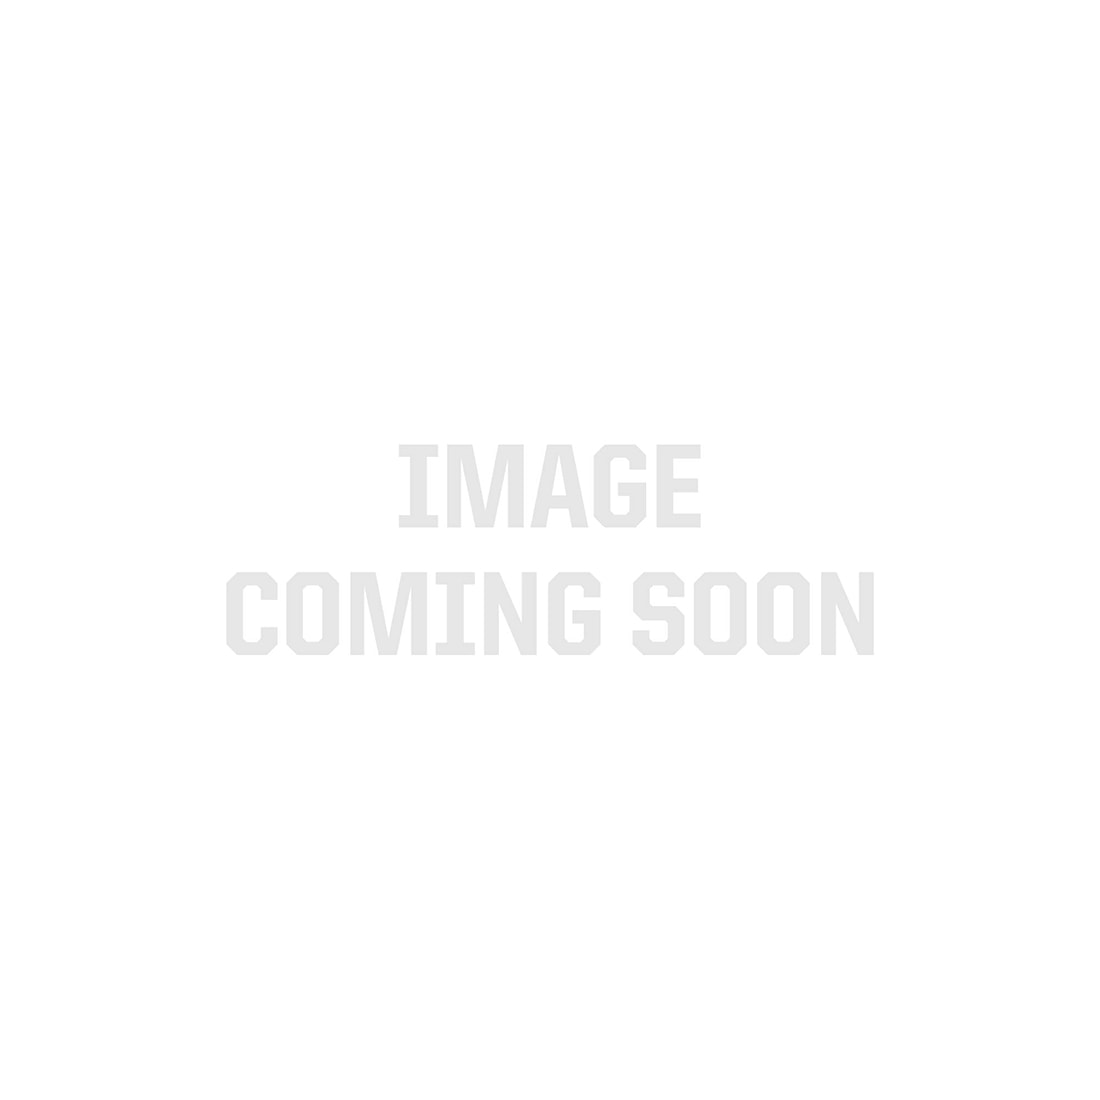 Waterproof Warm White 5050 Single Row CurrentControl LED Strip Light, 60/m, 12mm wide, by the 6m Reel